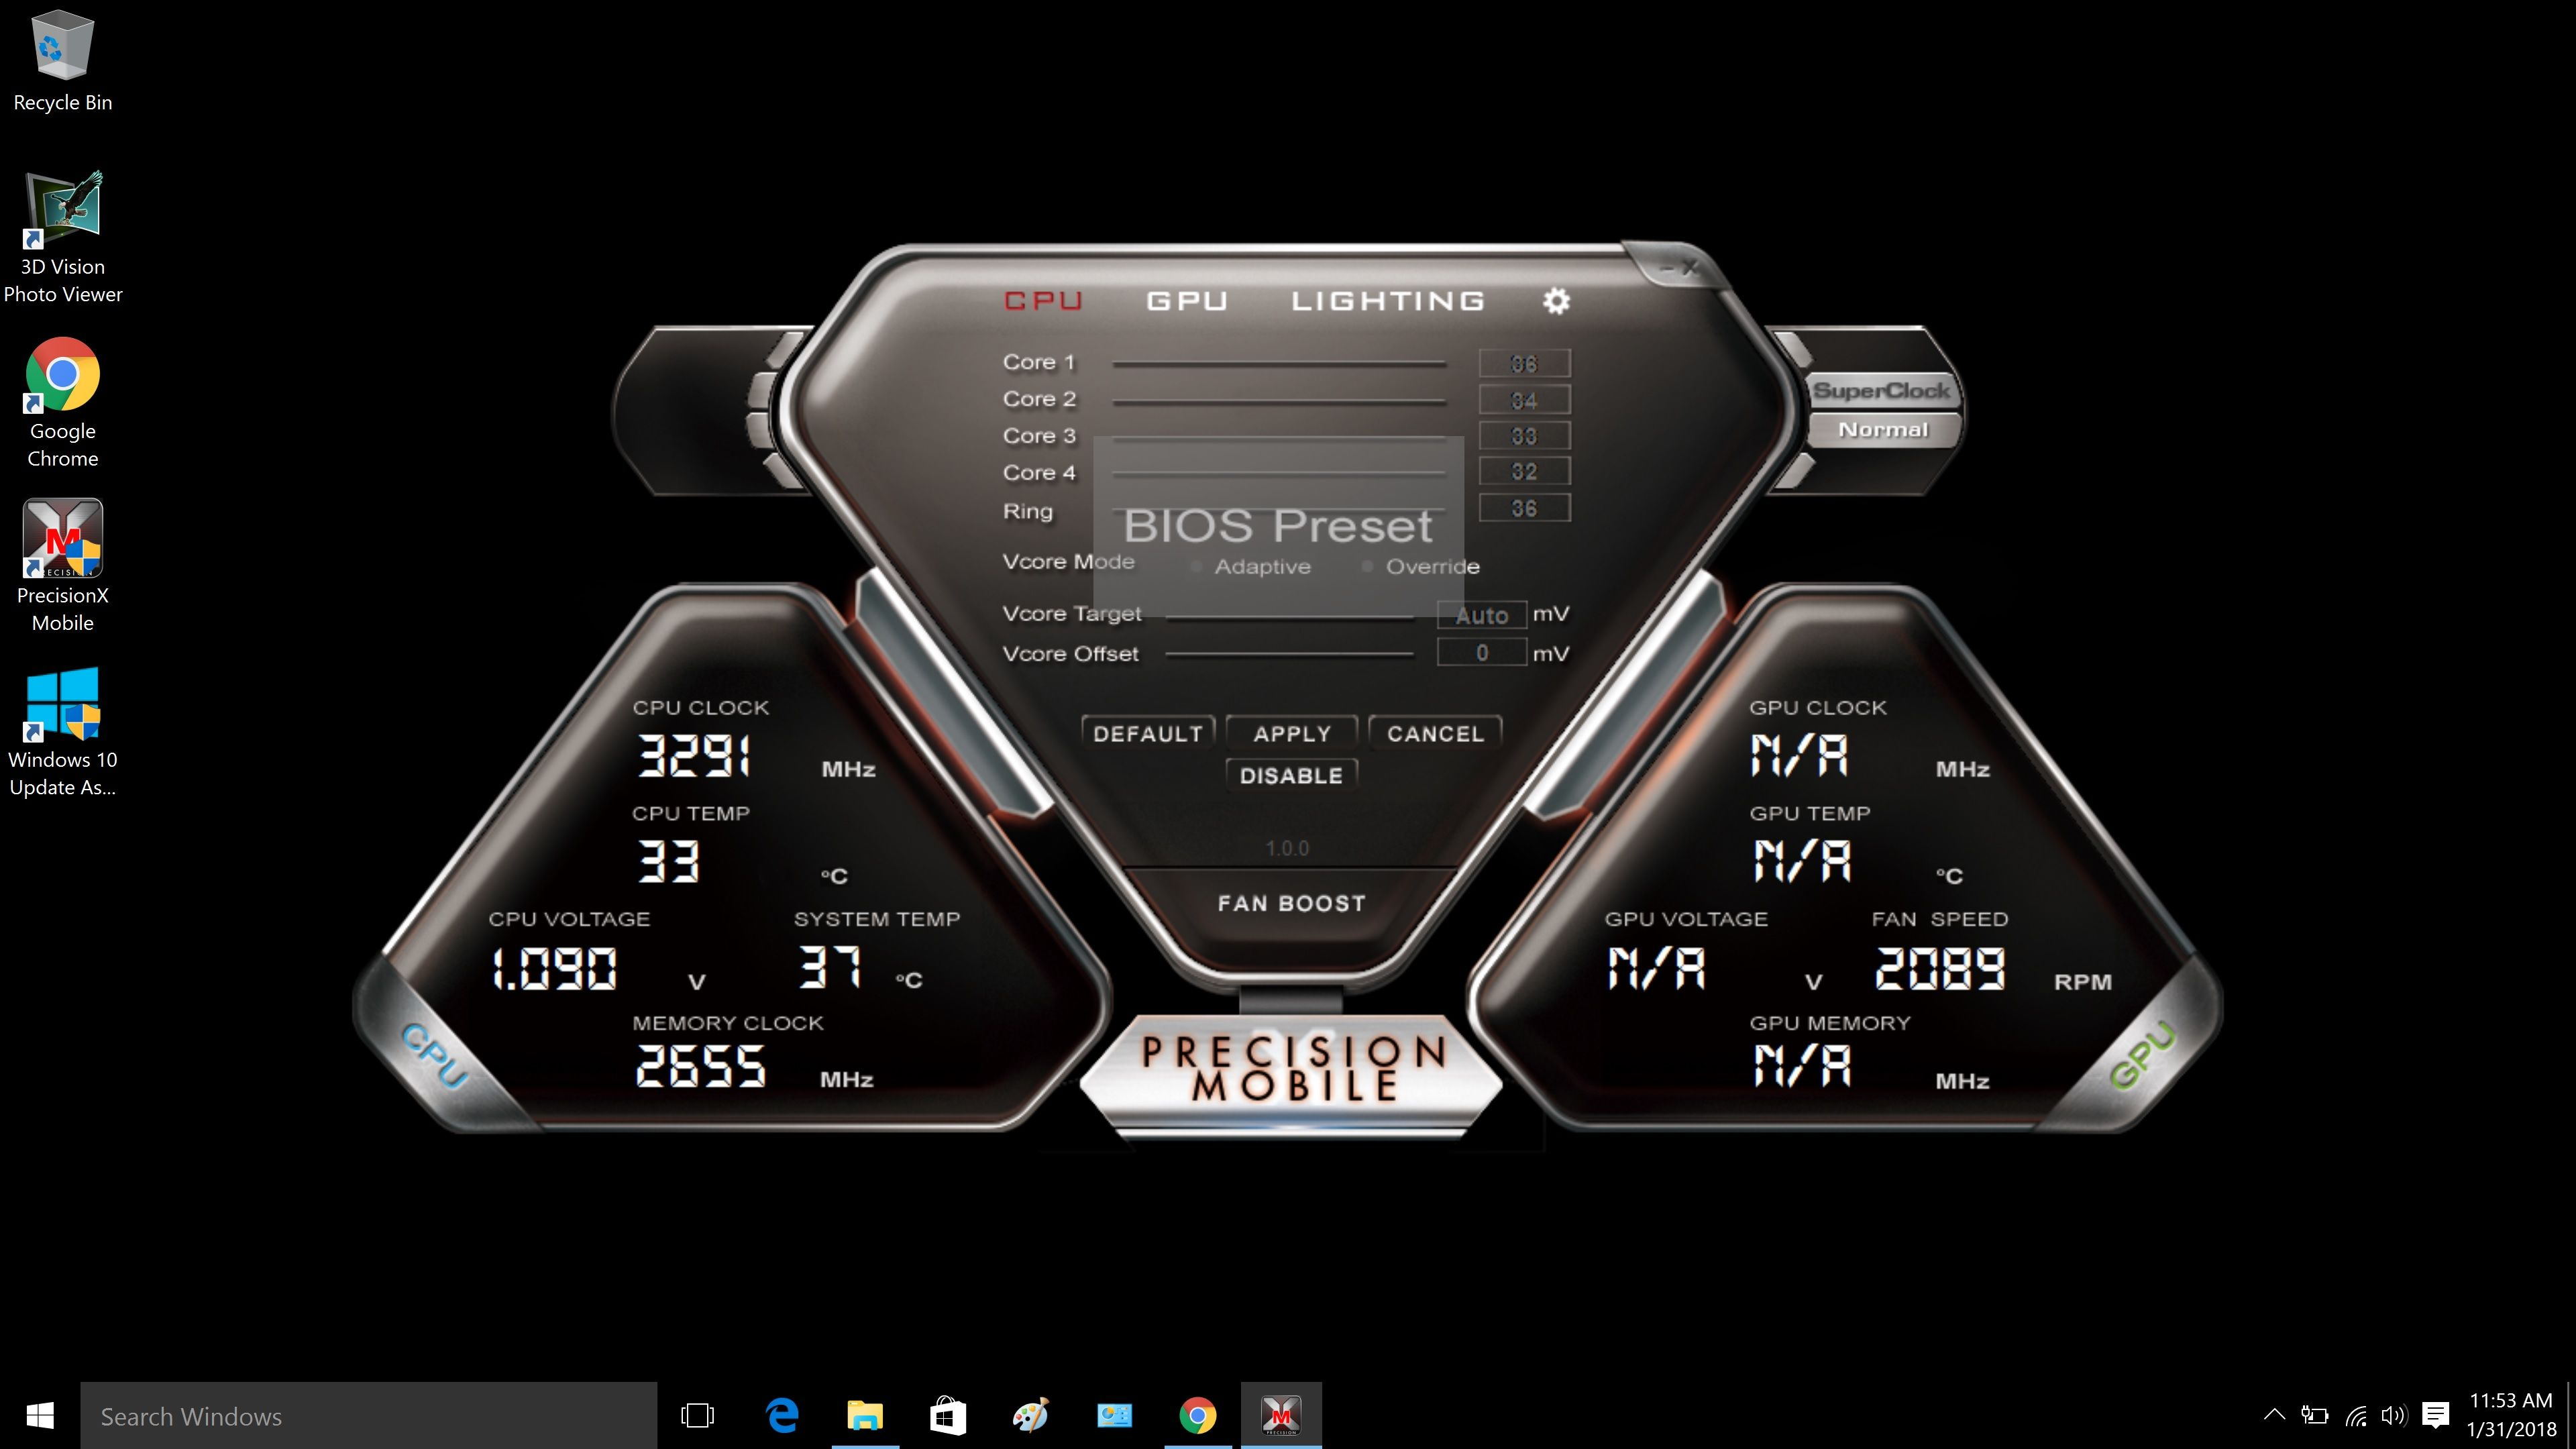 Is this normal? gpu clock,temp,voltage showing is NA